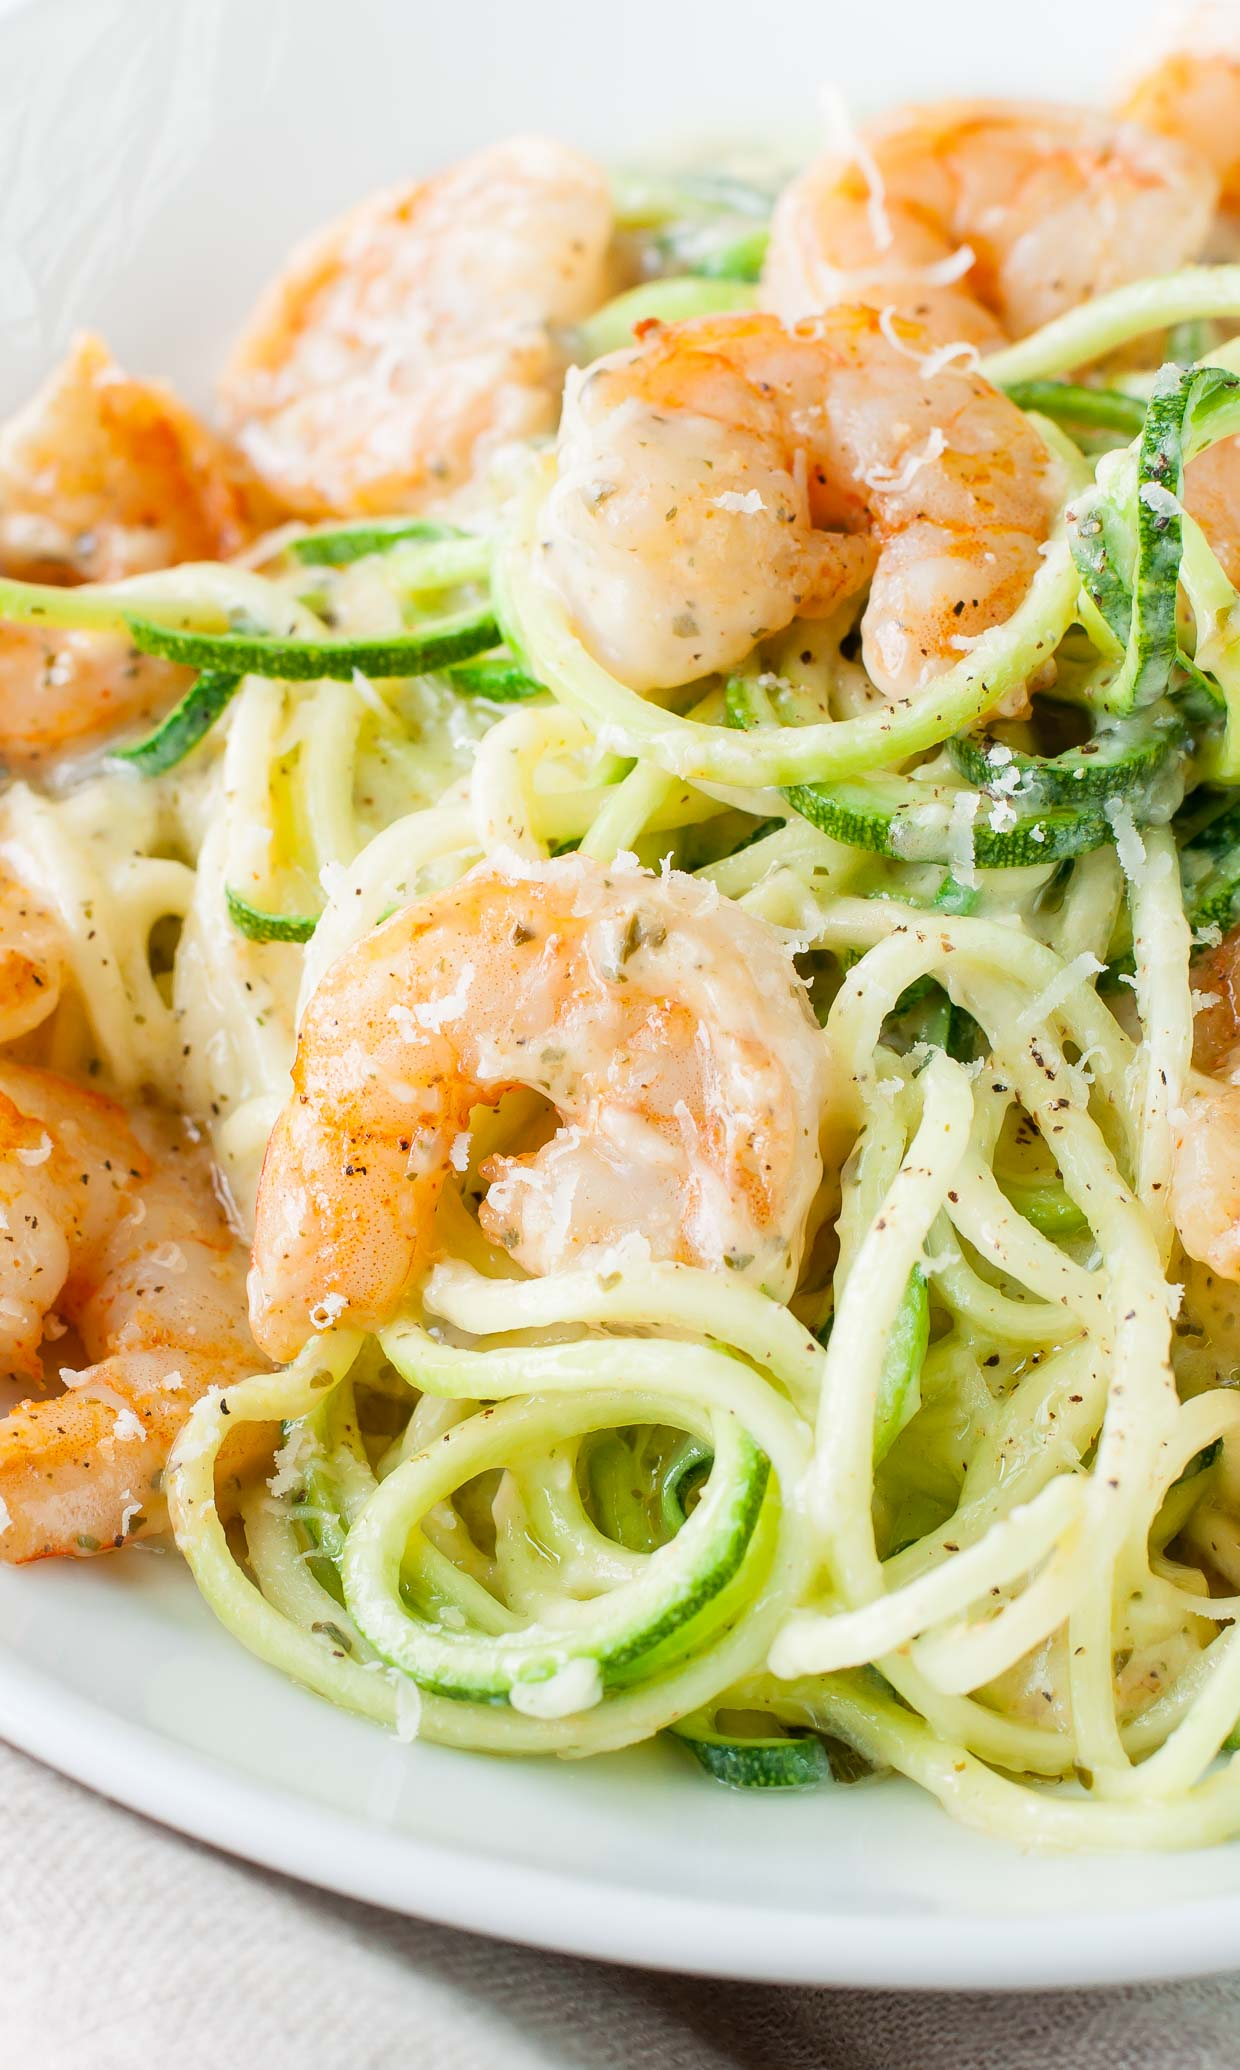 Ready for some easy peasy comfort food with a light and creamy twist? Shrimp and Zucchini Noodles in a Parmesan Pesto Cream Sauce... pencil it in for lunch or dinner this week and prepare to swoon!